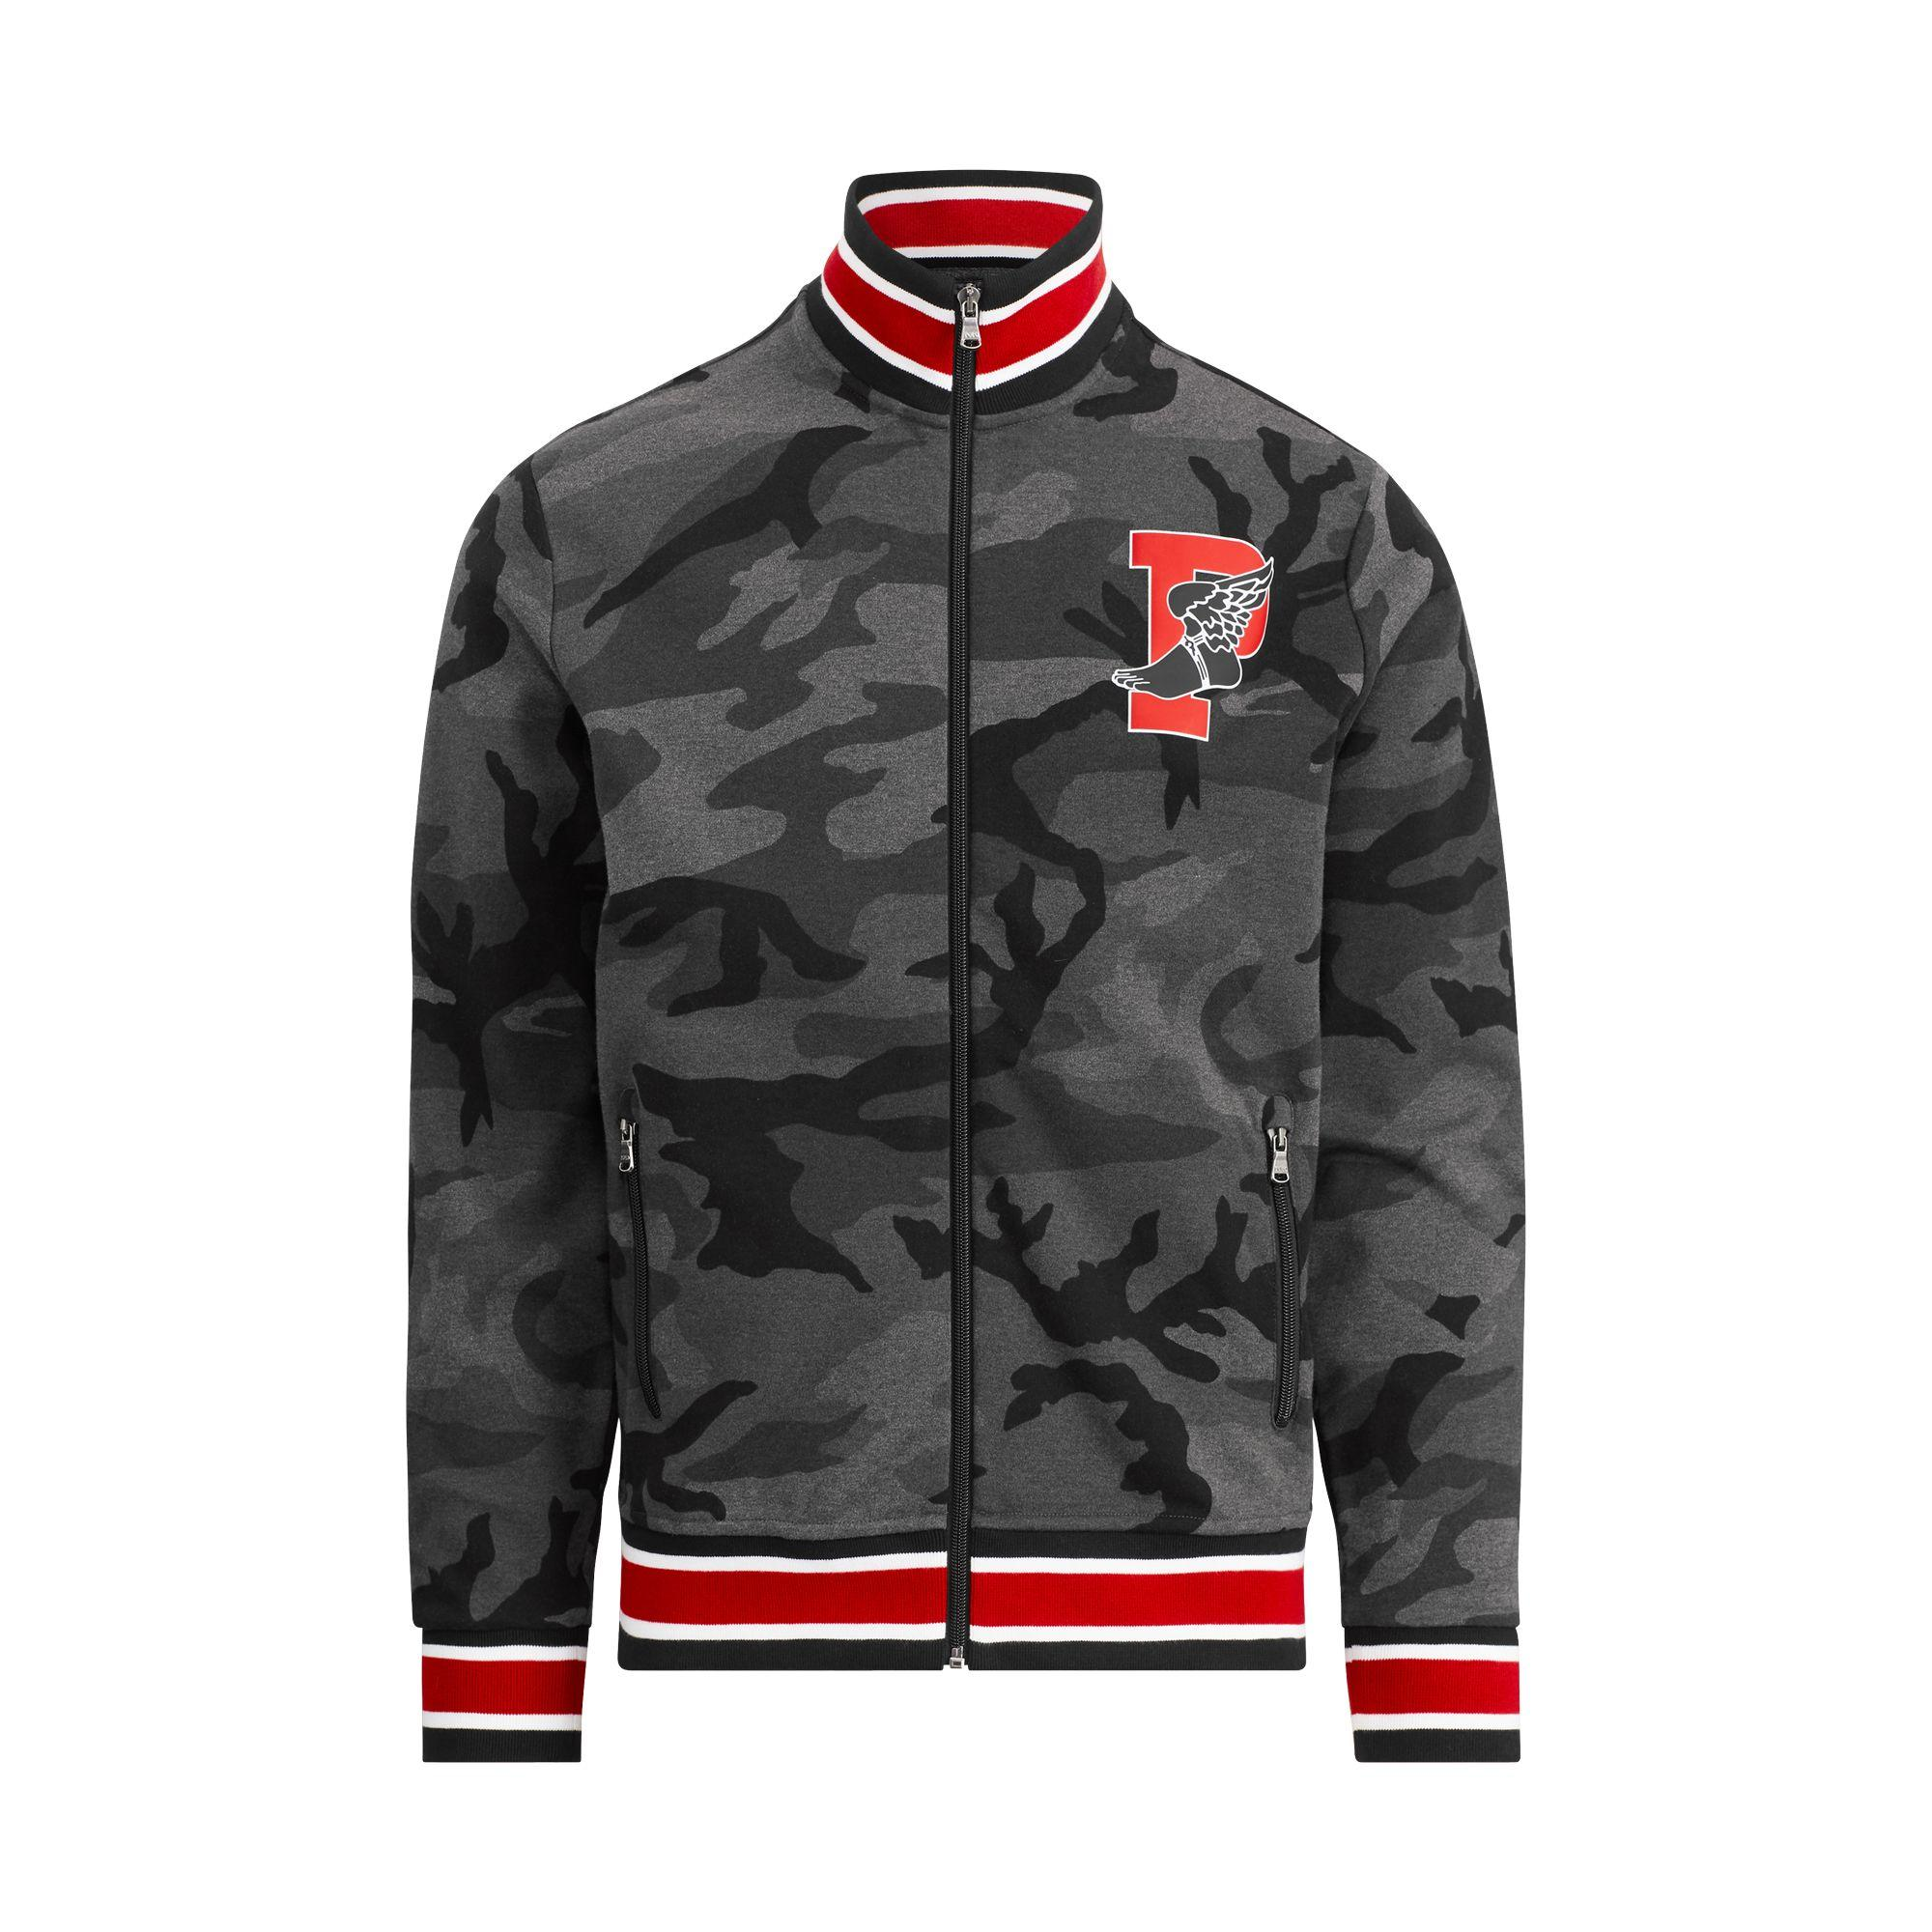 3543699c02 Lyst - Pink Pony P-wing Cotton Track Jacket for Men